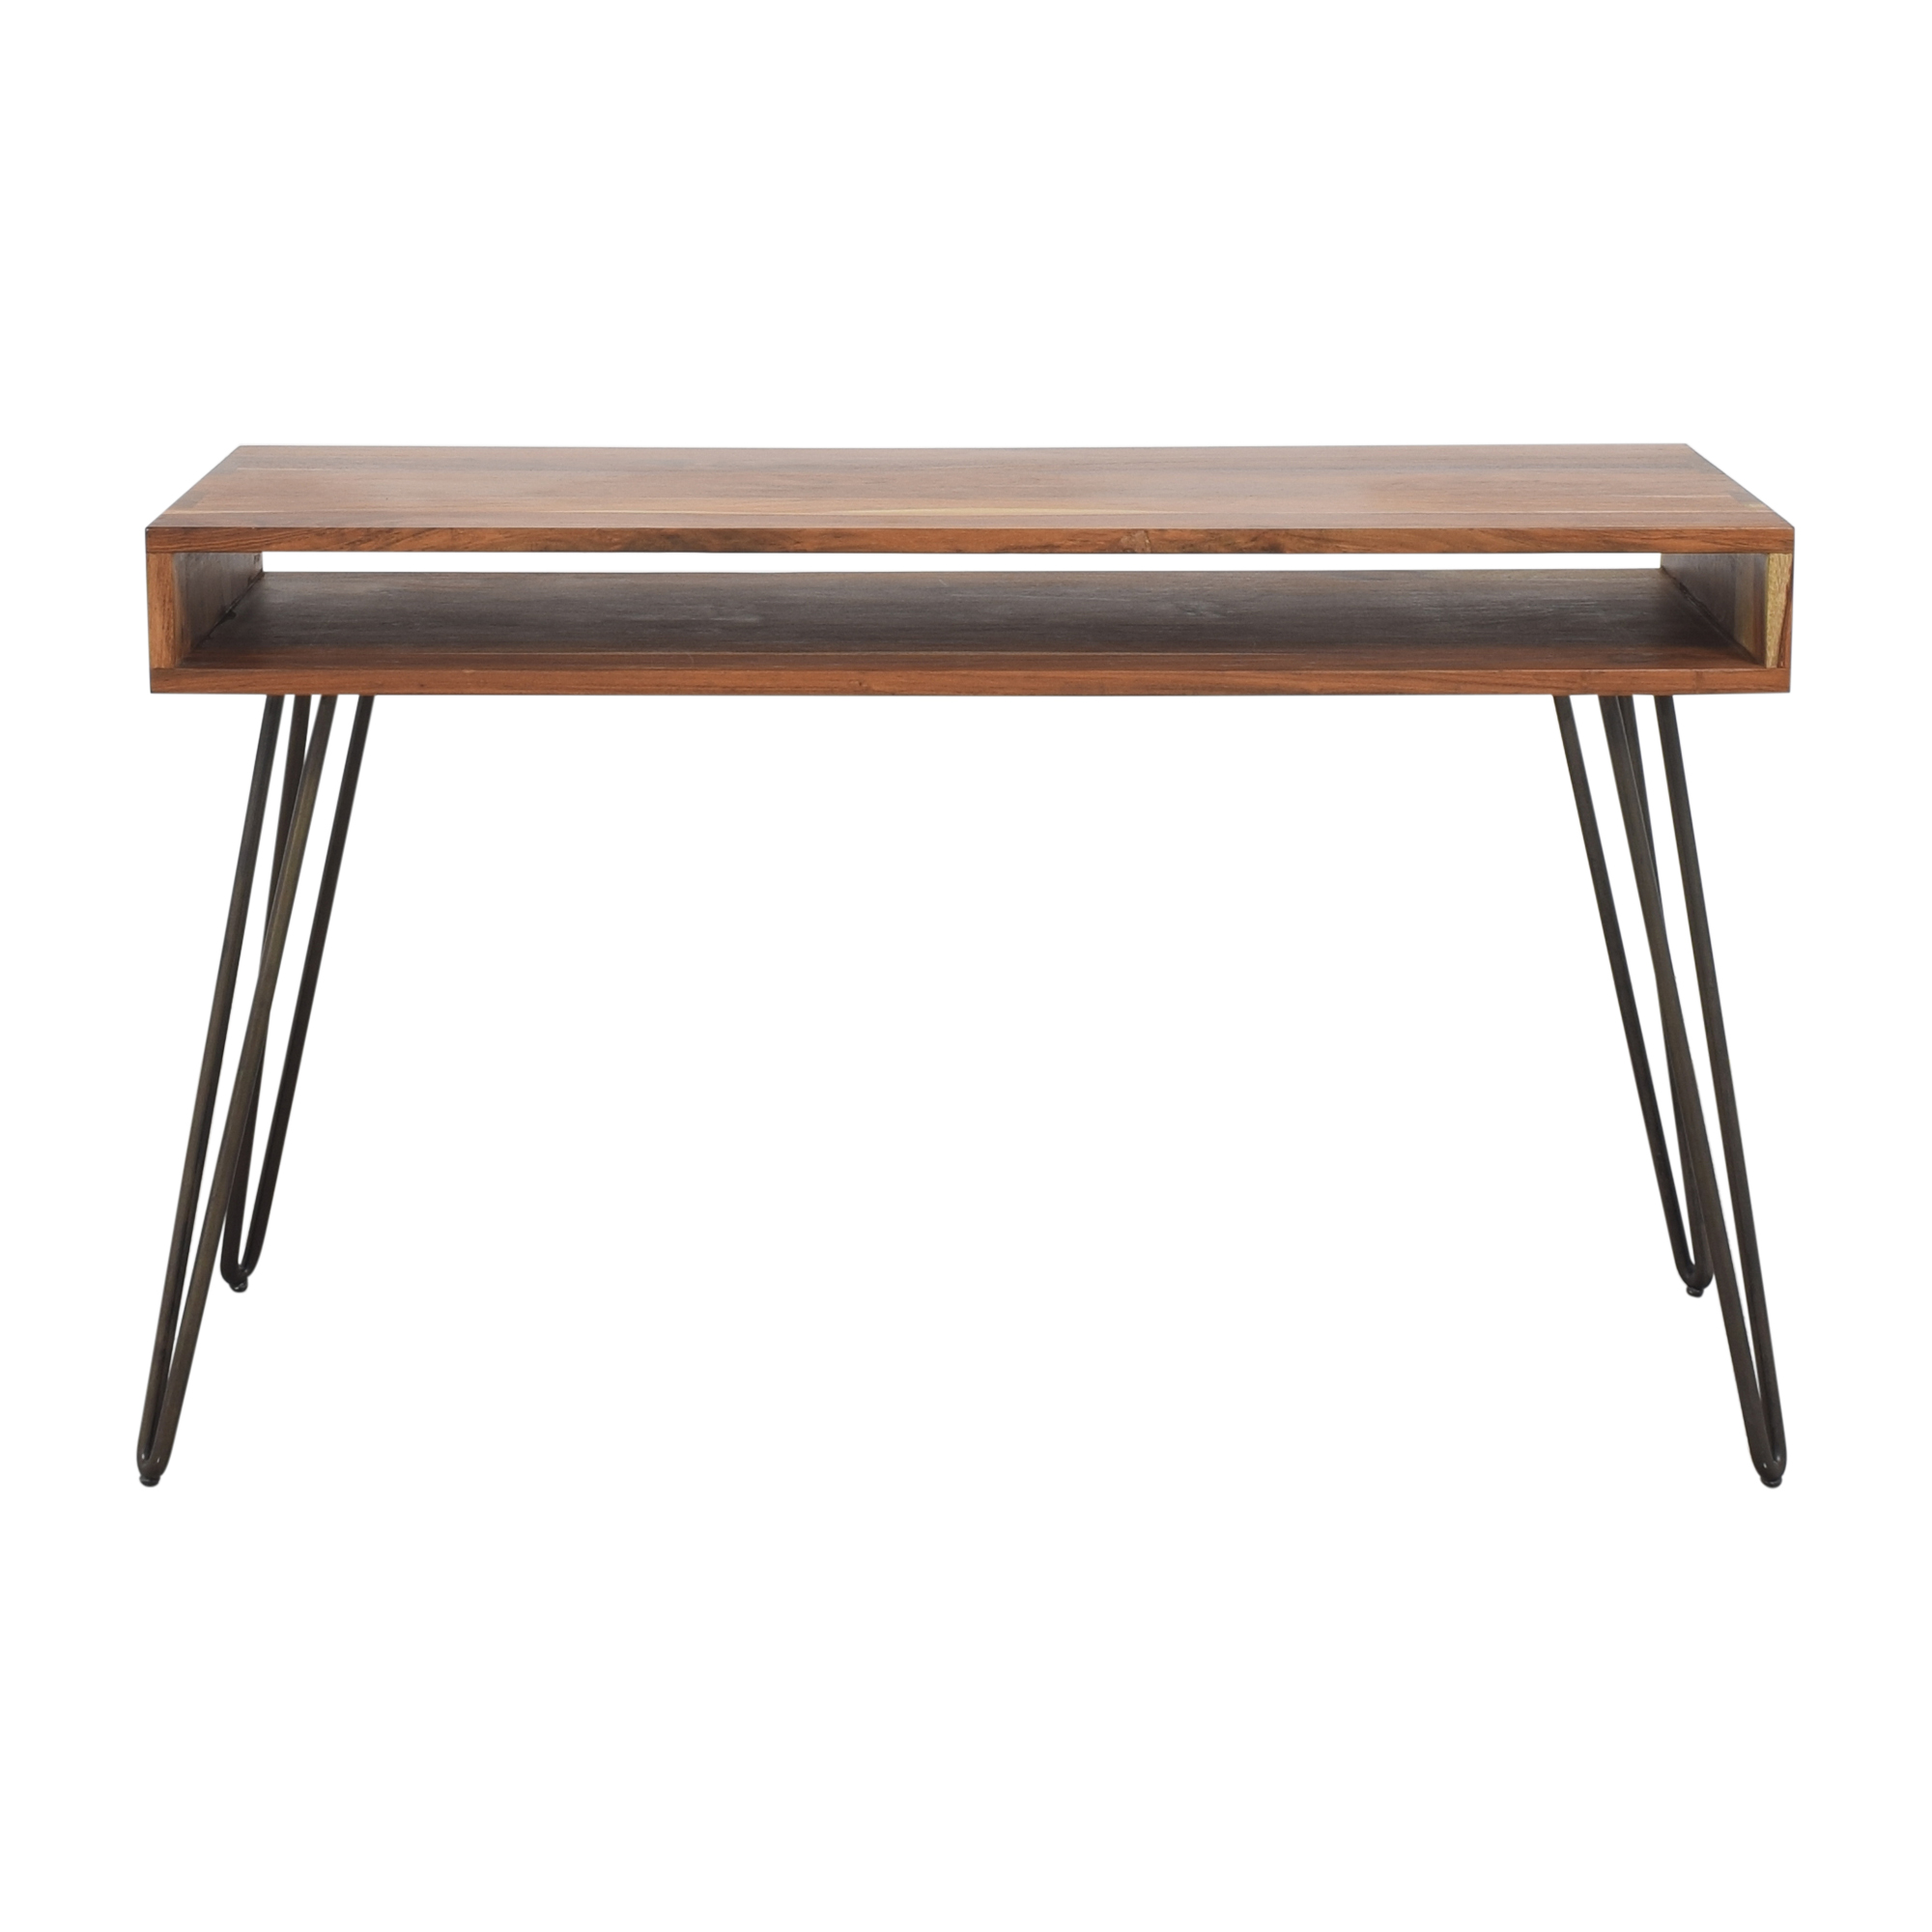 Brooklyn City Furniture Brooklyn City Furniture Ciao Desk discount